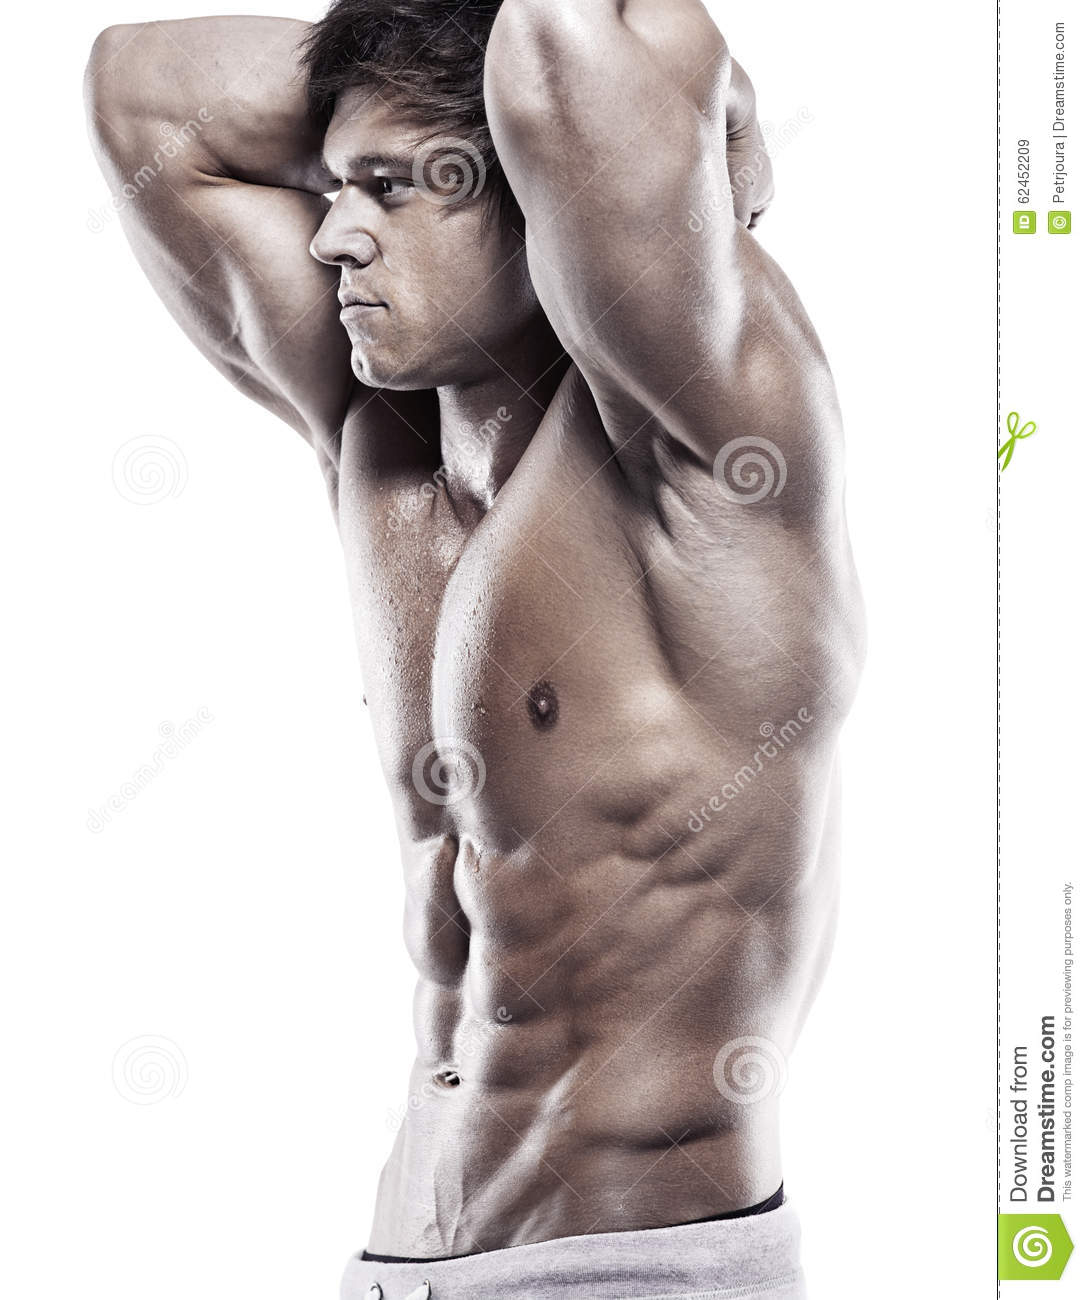 Homme sportif fort montrant le corps musculaire